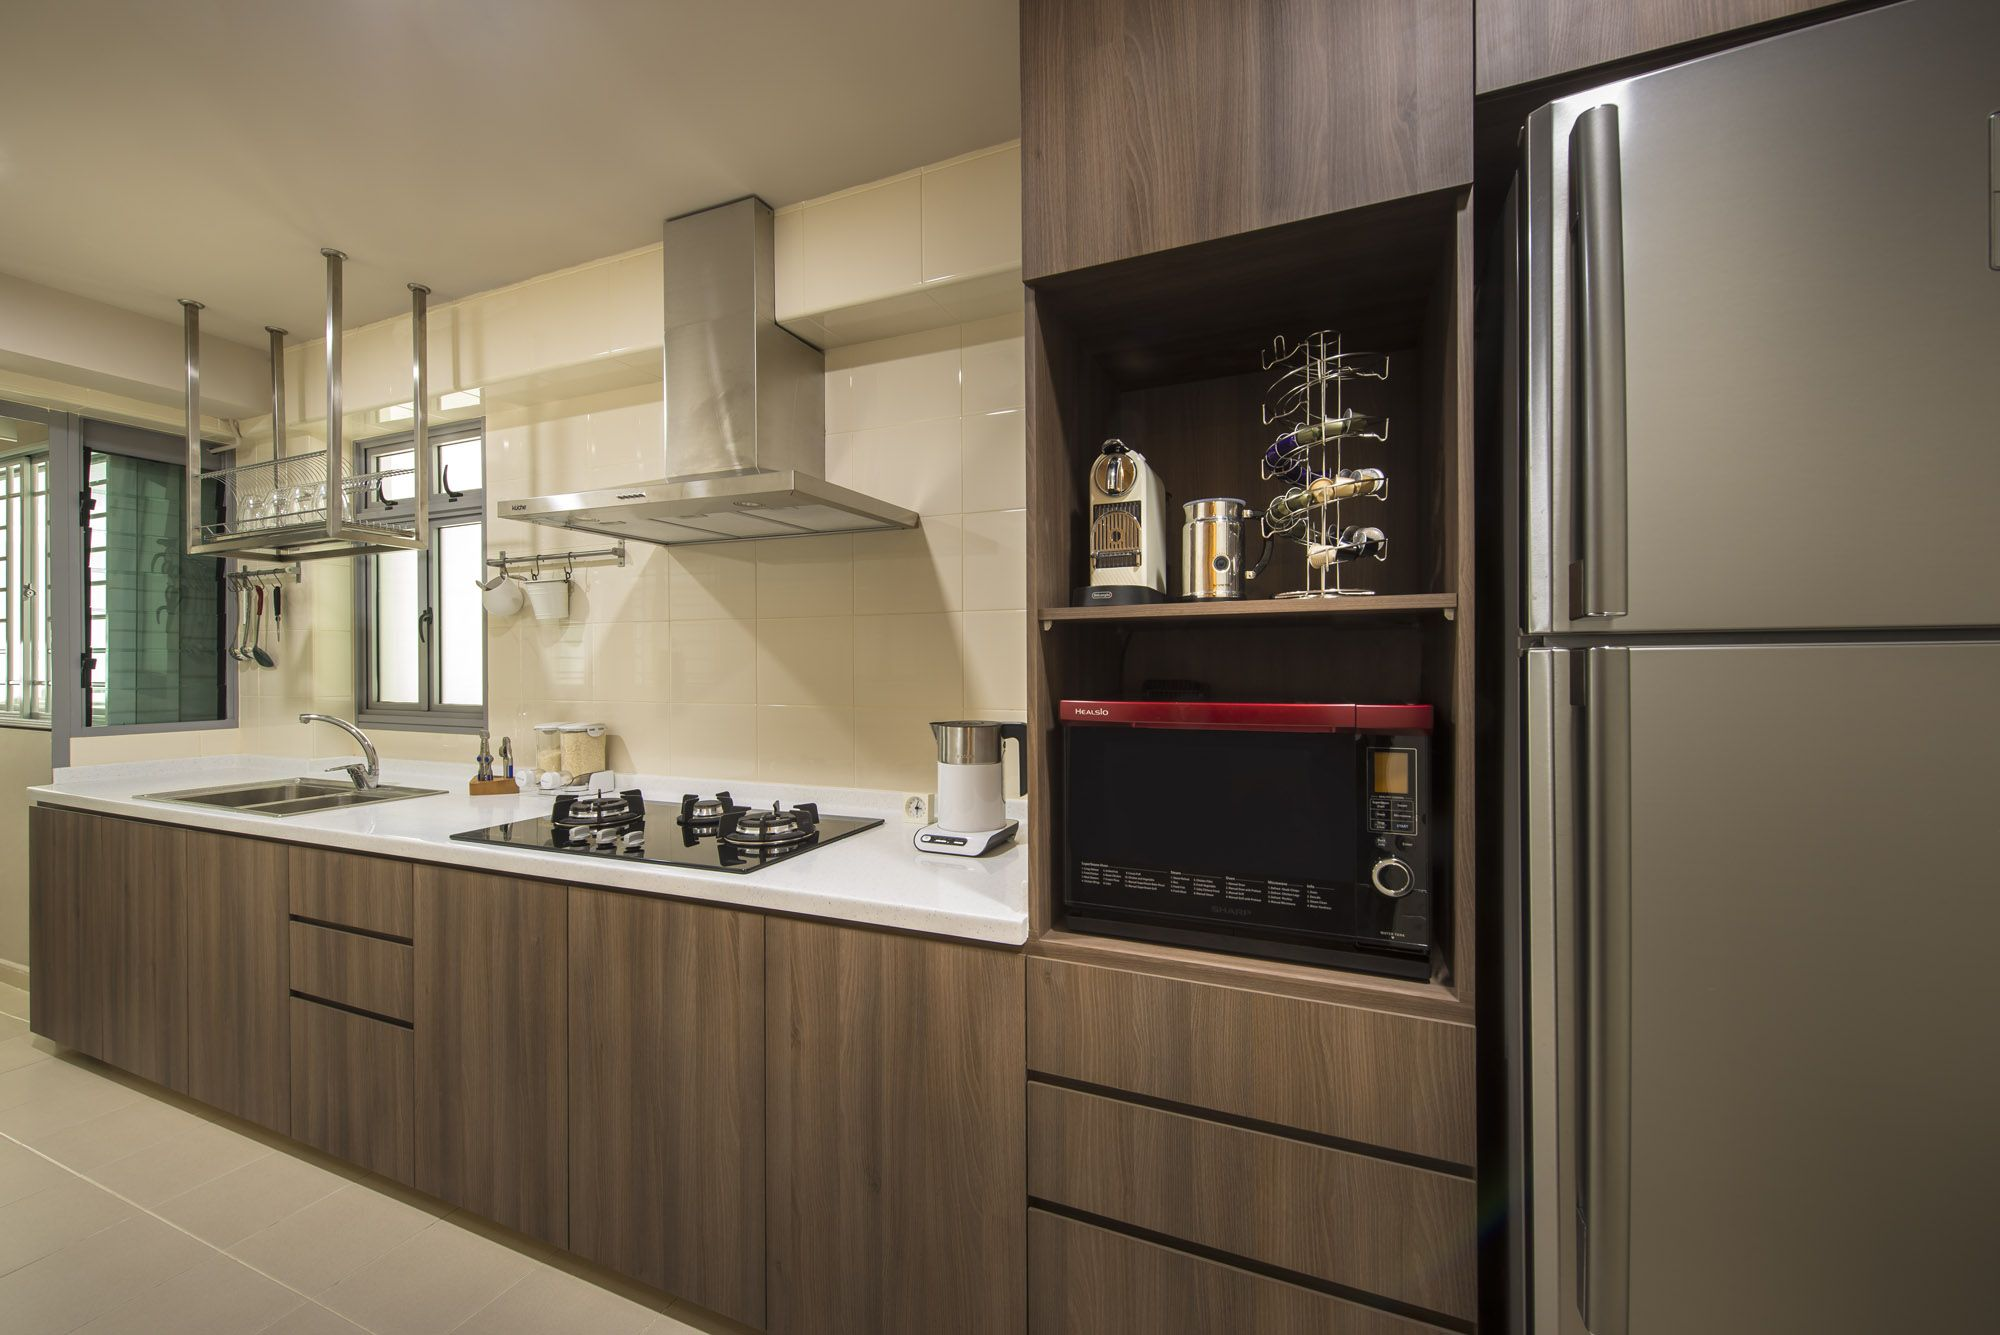 Kitchen Cabinet Price List Singapore Interior Design By Rezt 39n Relax Of Singapore Renovation